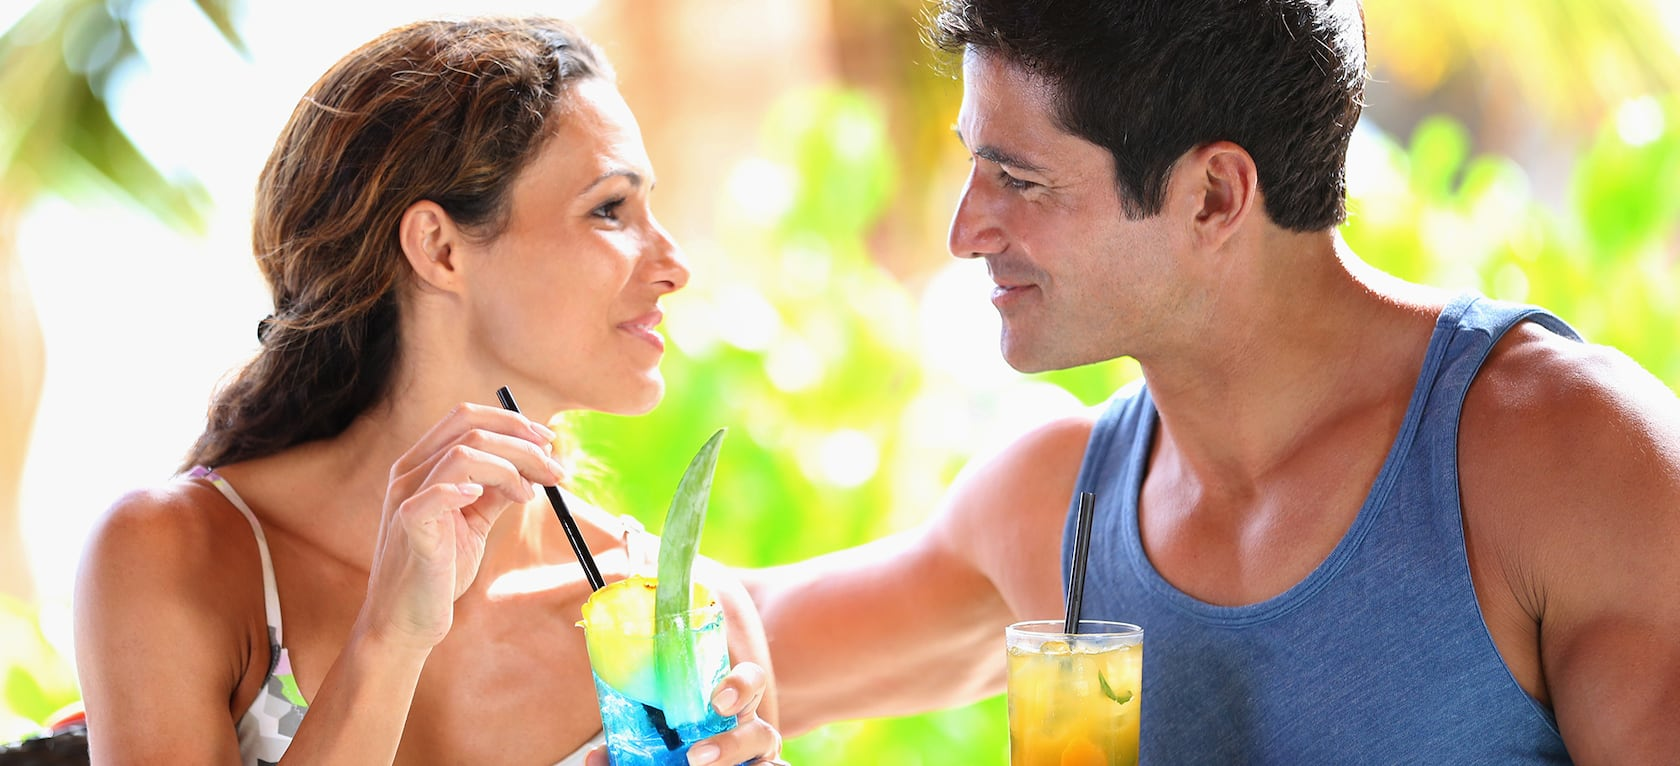 A woman and a man gaze into each other's eyes while enjoying cocktails